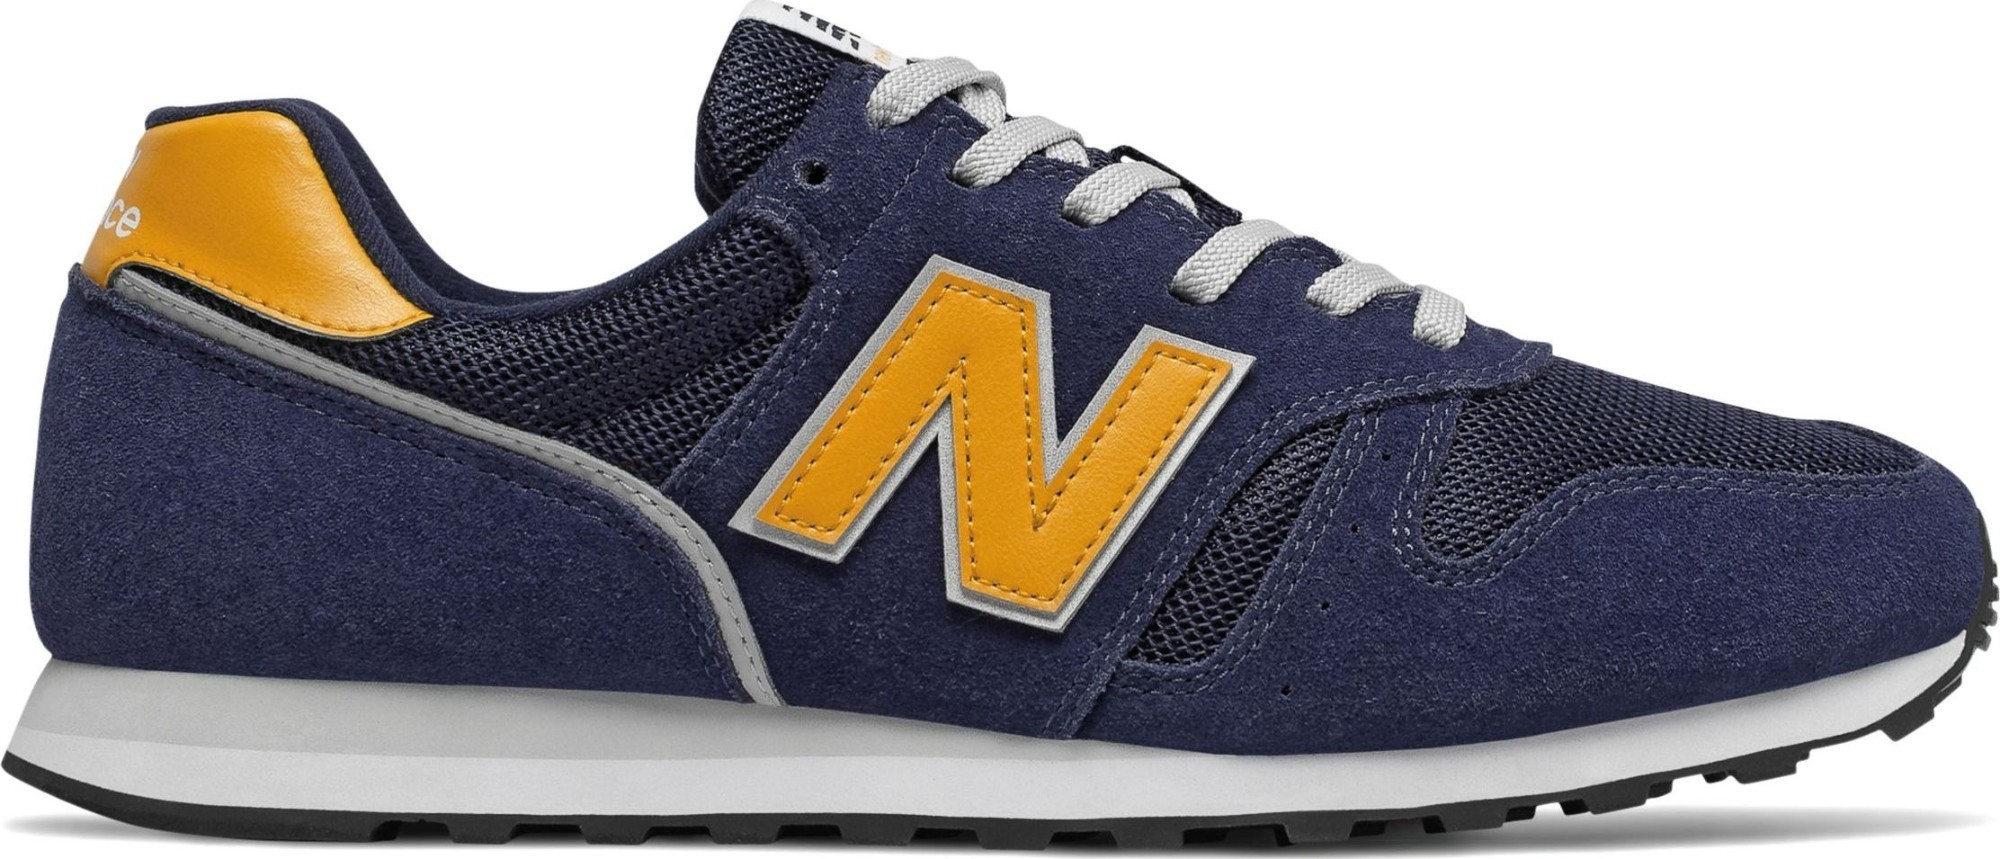 New Balance ML373 Navy/Yelow 43